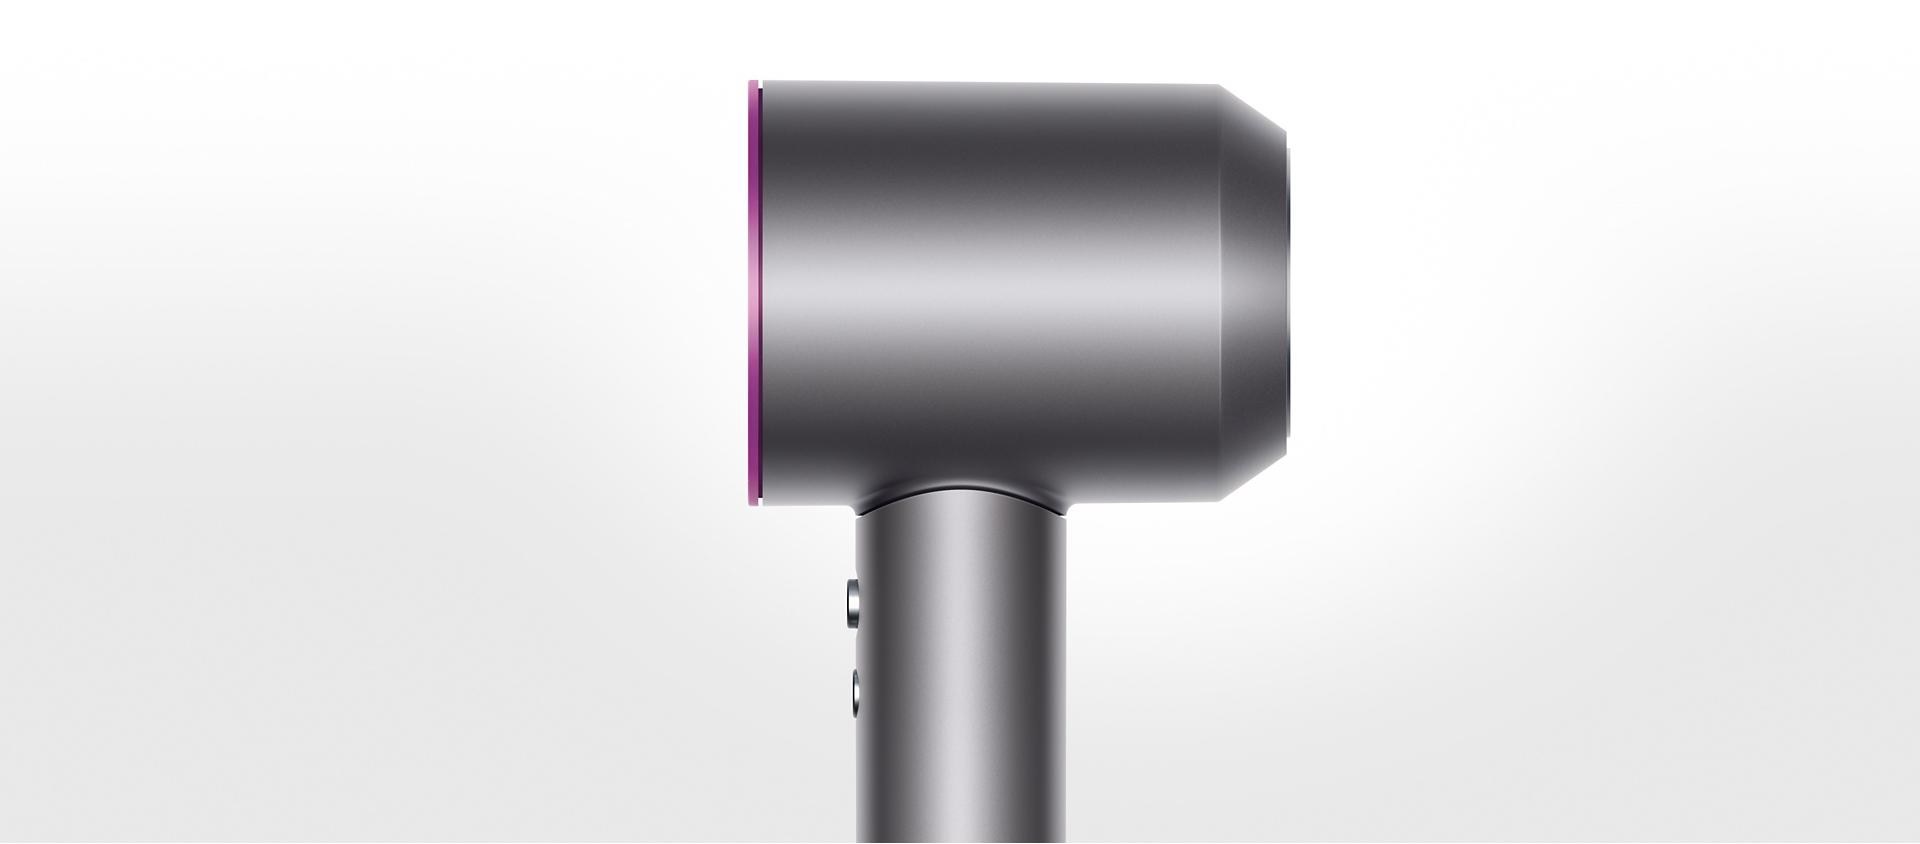 Features dyson india supersonic hair dryer dyson india for Dyson hair dryer motor